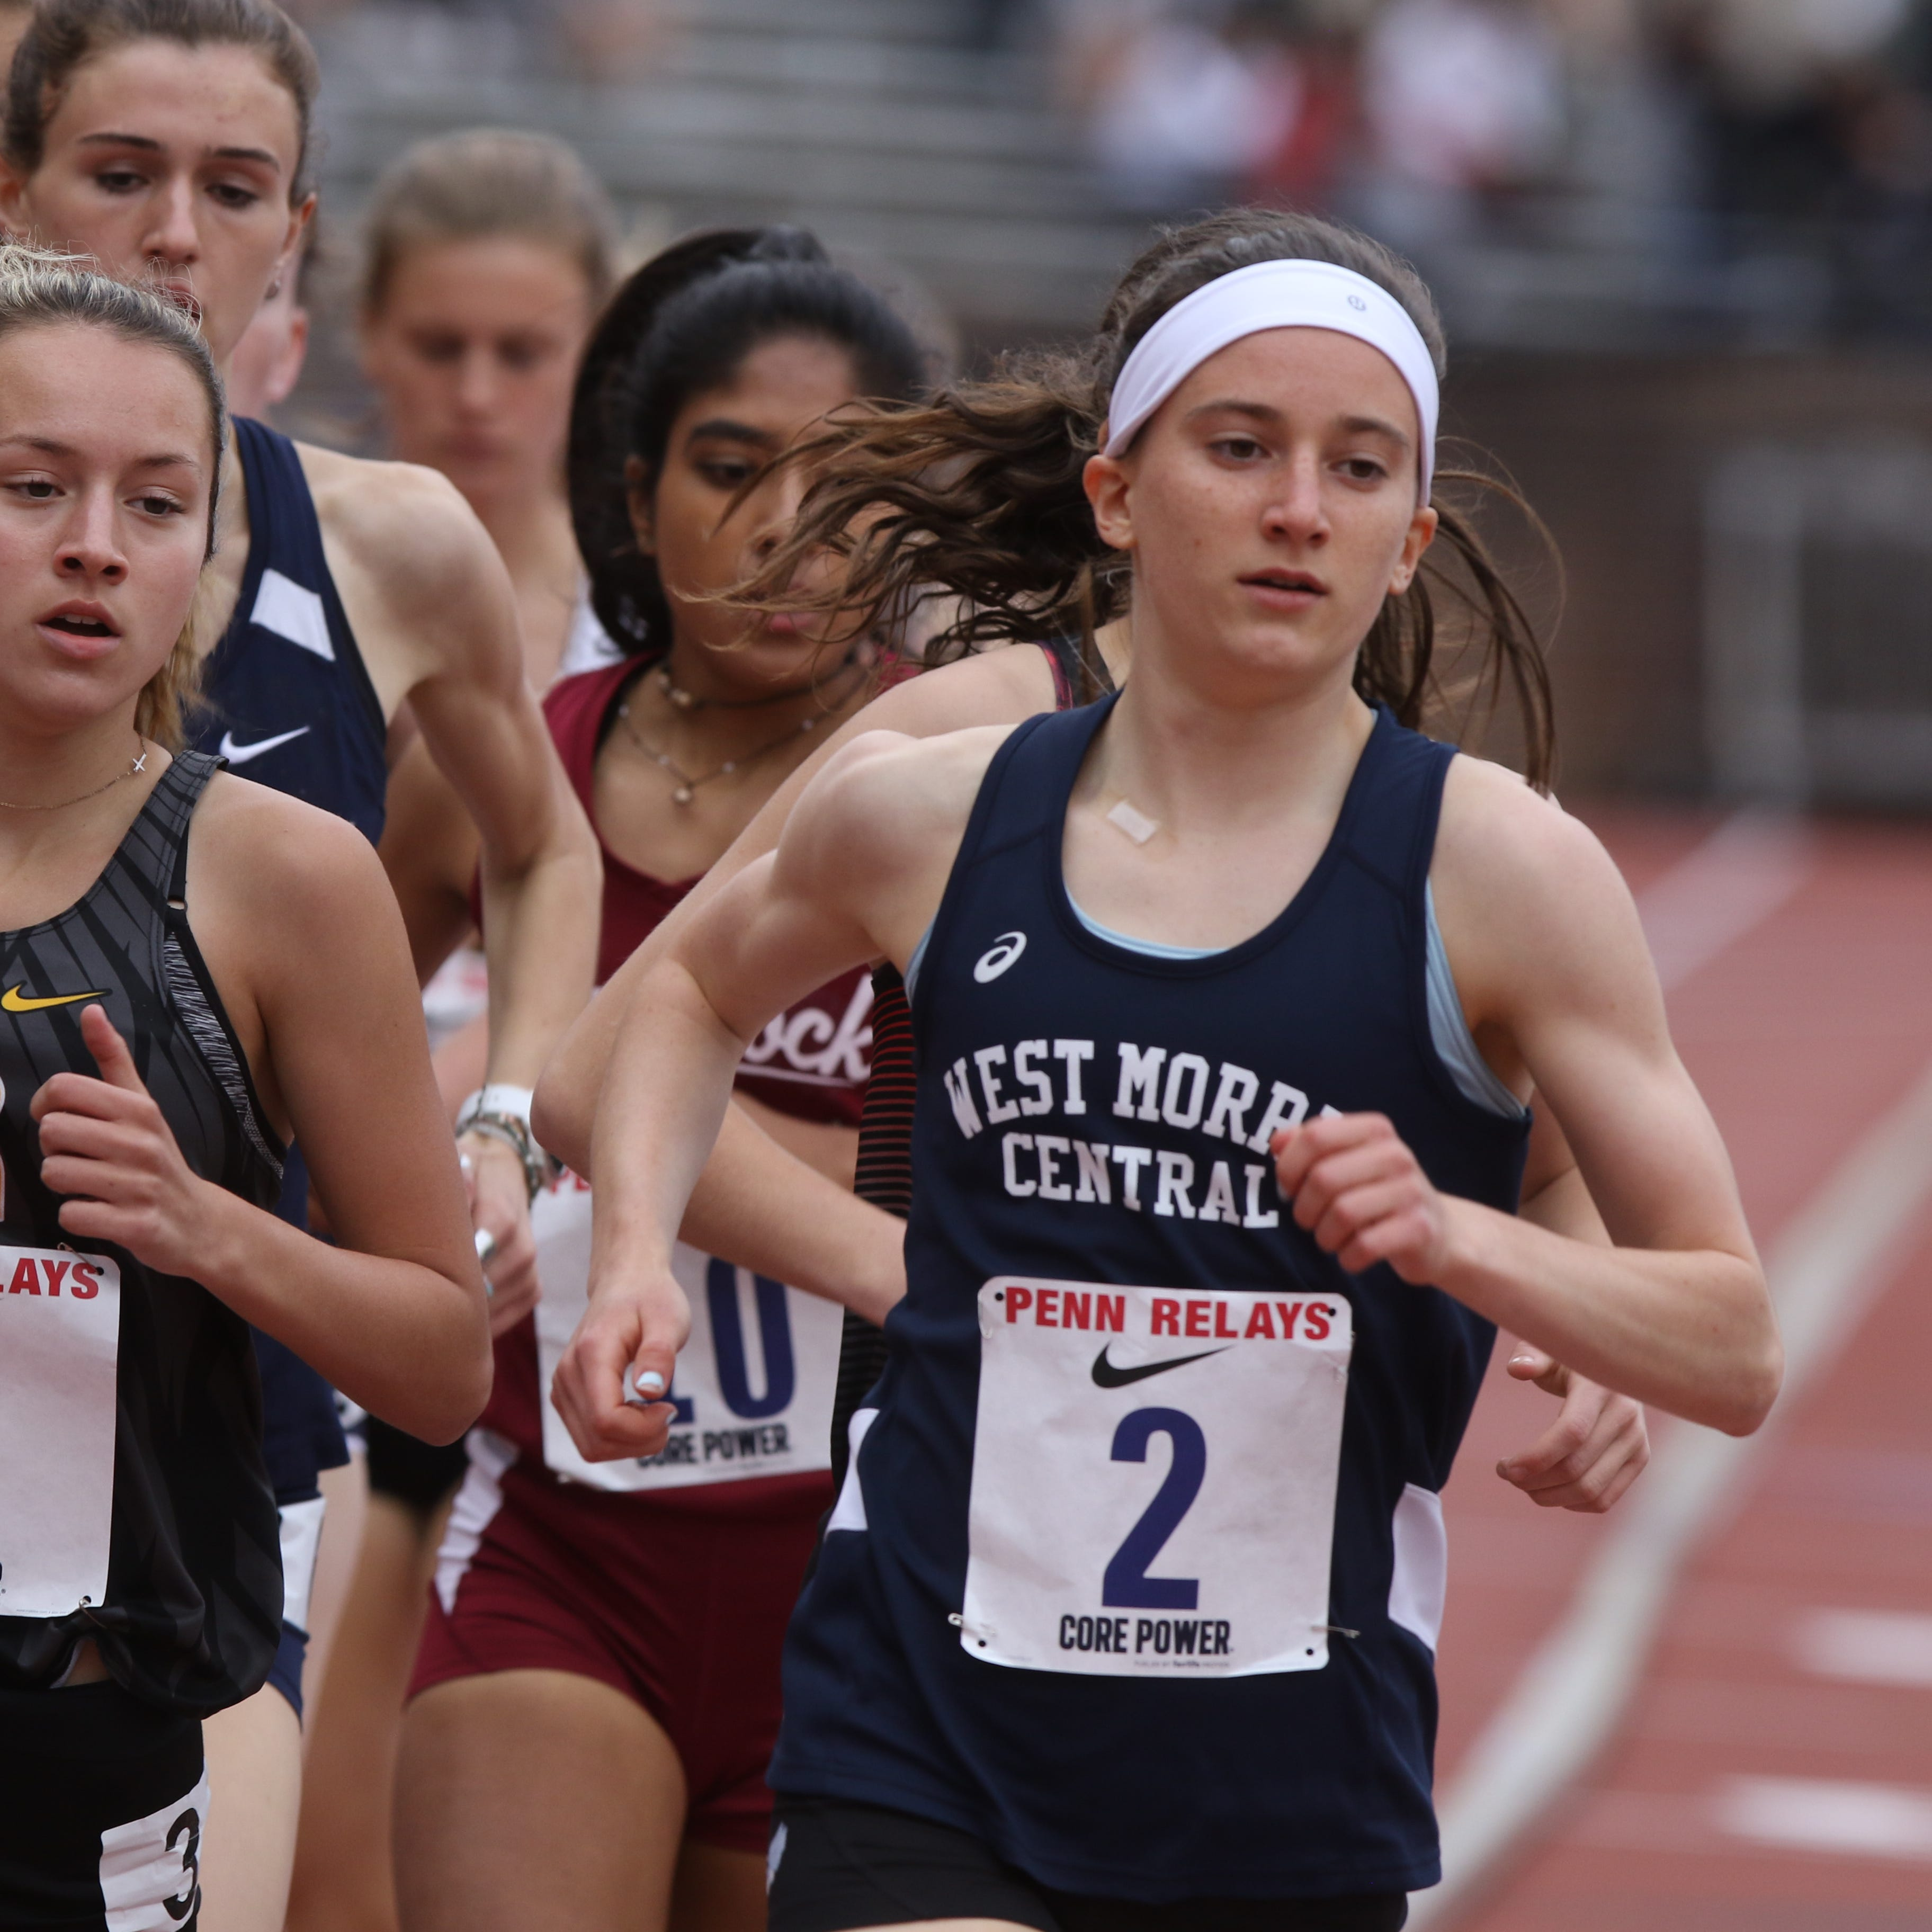 Personal bests prevail at Penn Relays